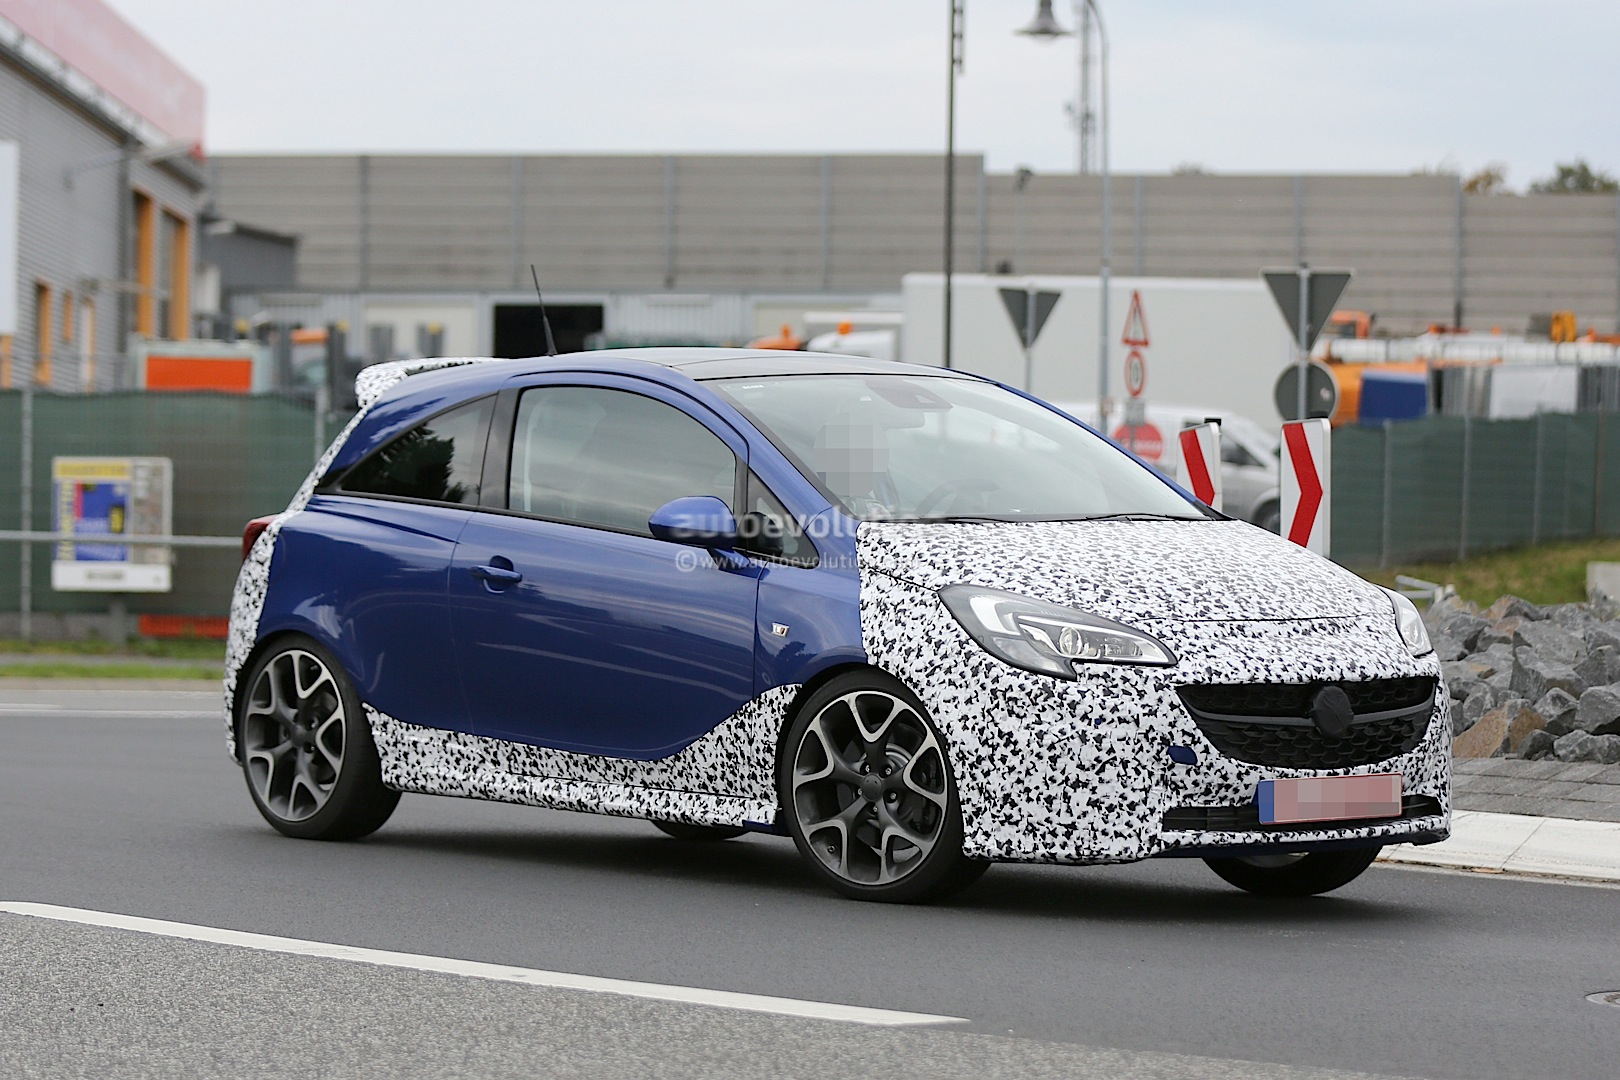 New Opel Corsa OPC 210 HP And 6 Speed Manual Confirmed